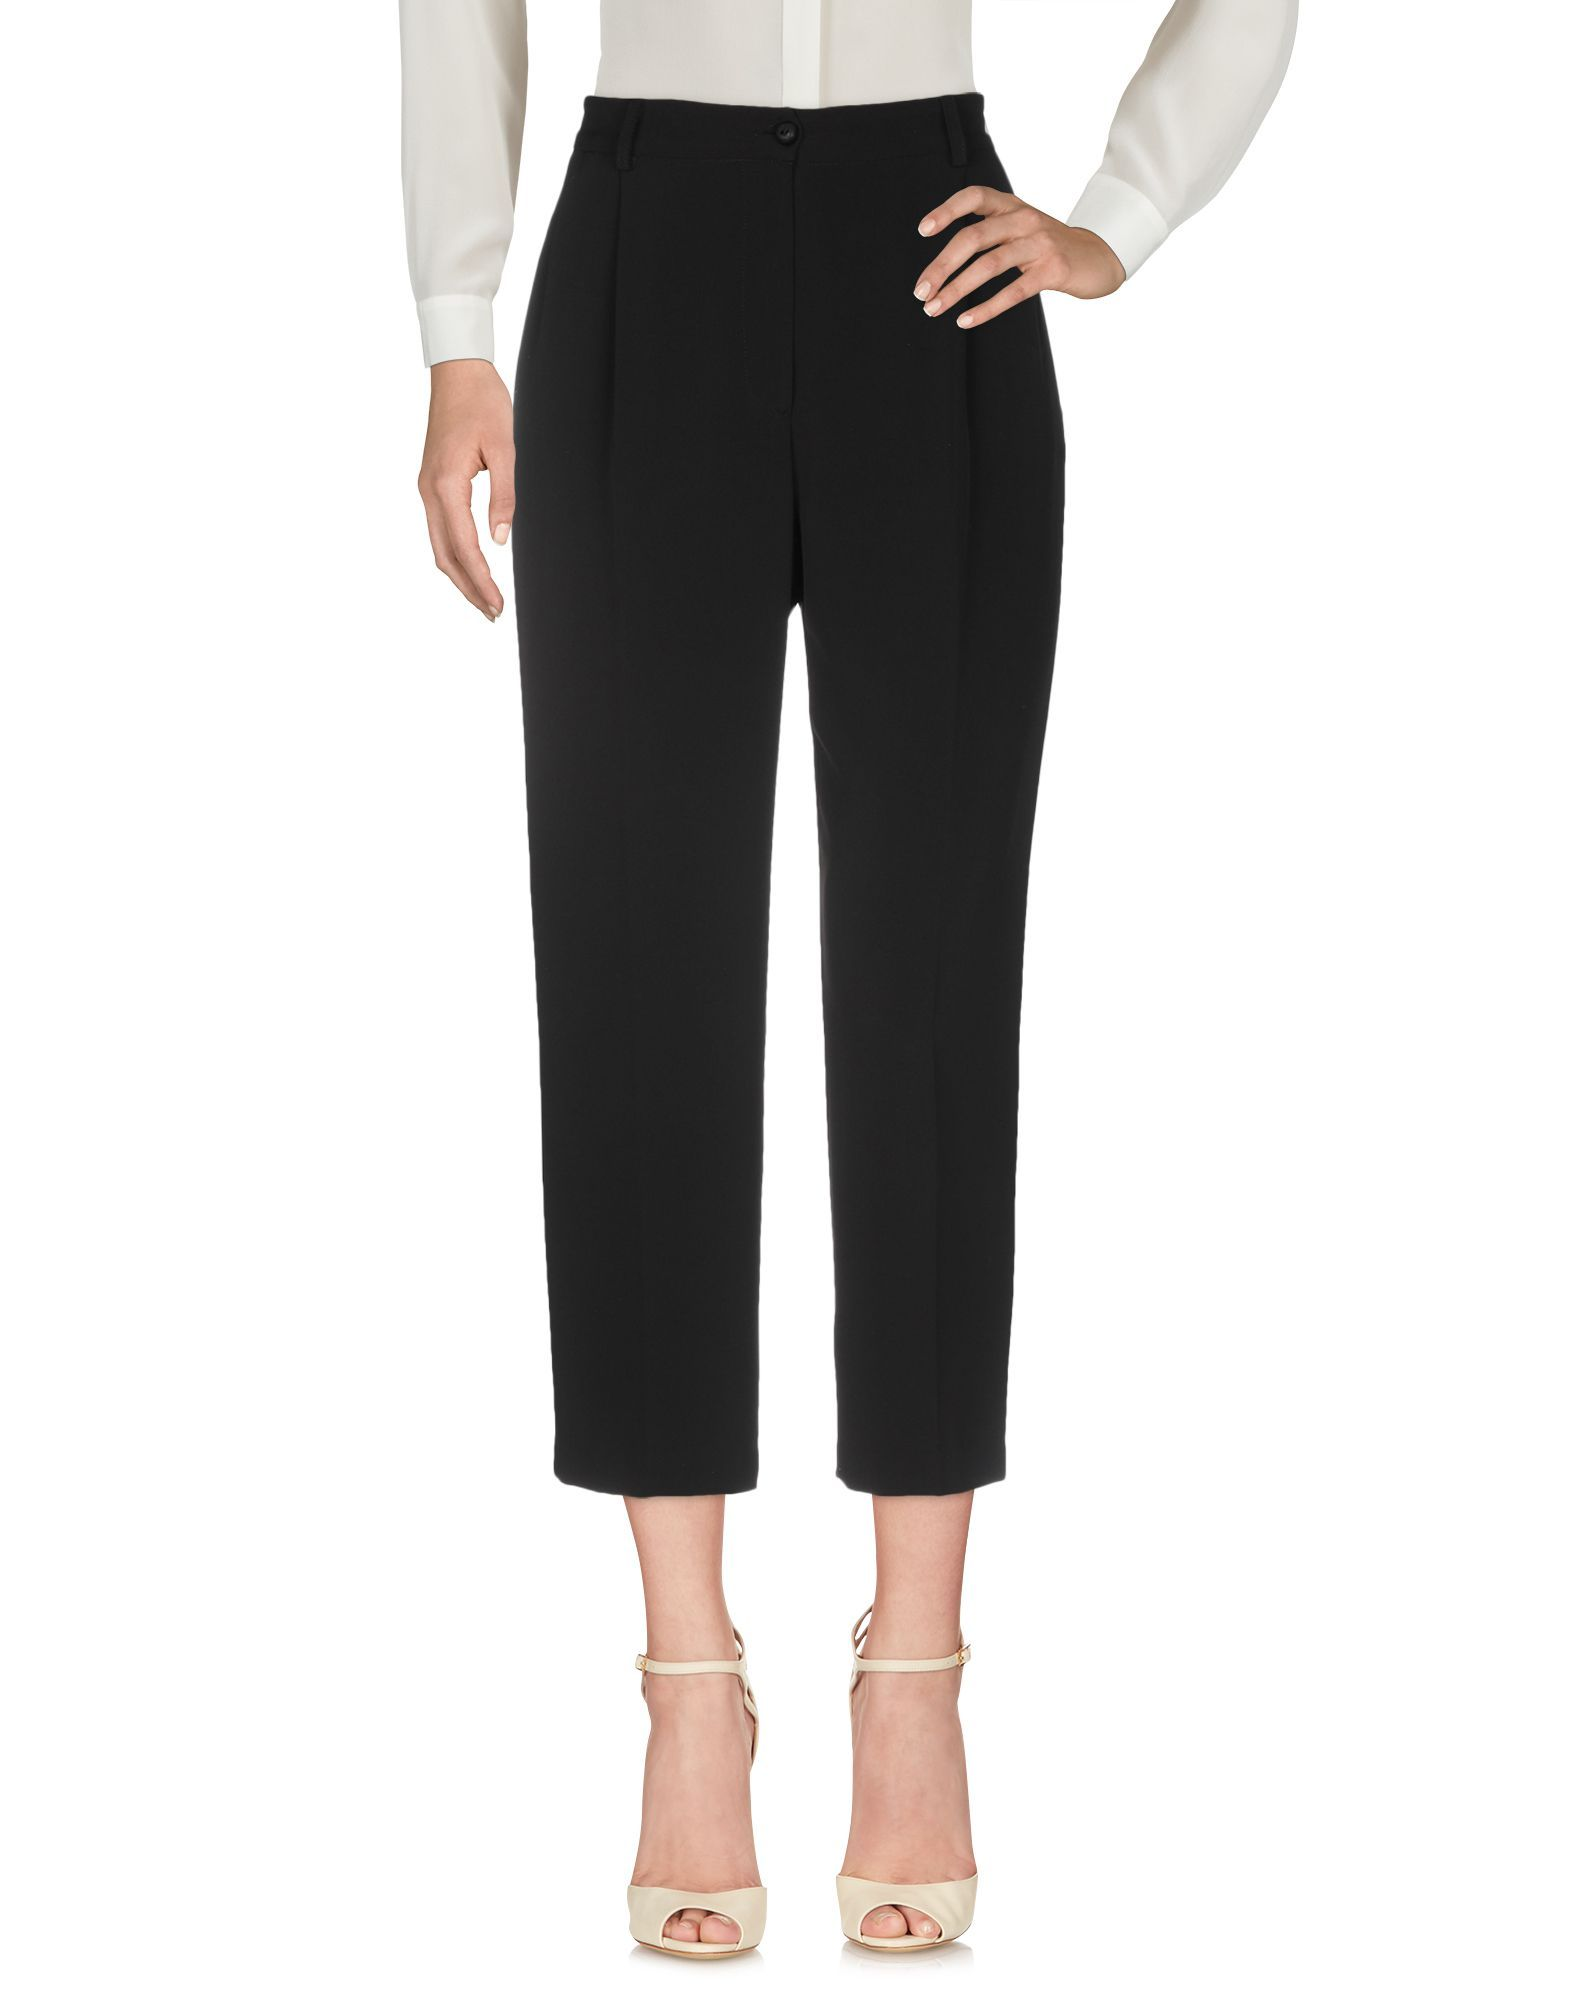 Trousers Nora Barth Black Women's Polyester